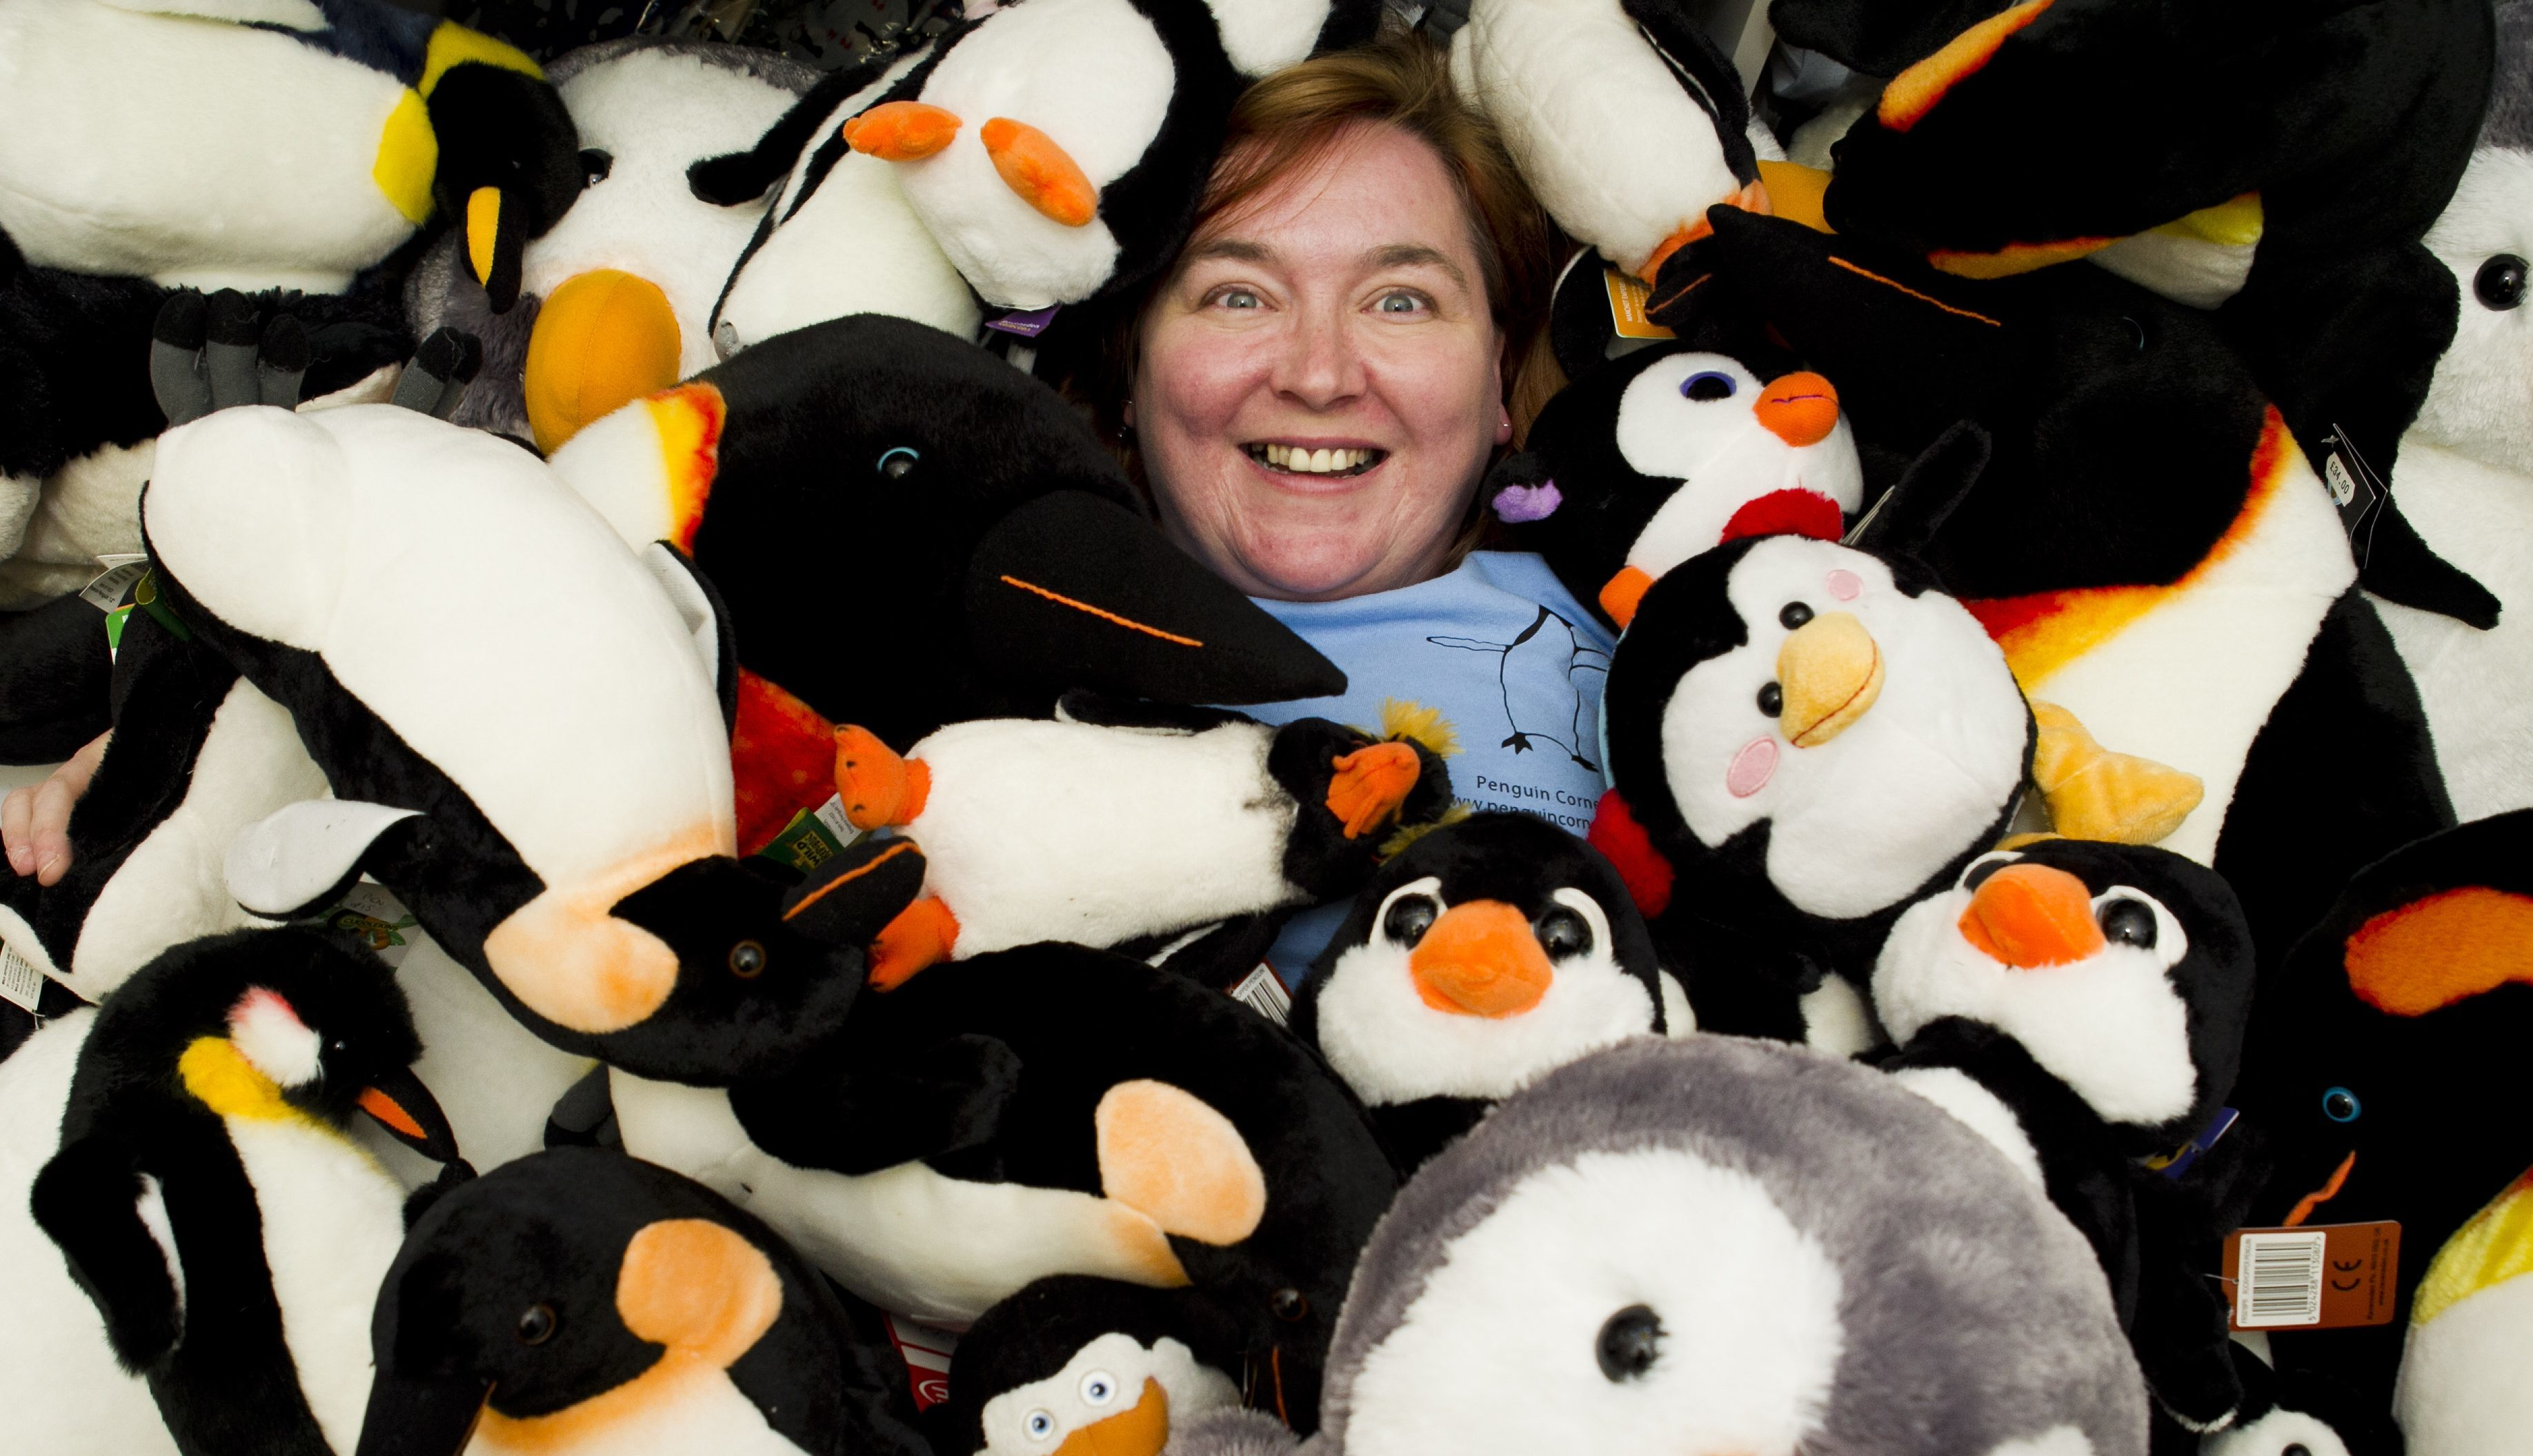 Gillian Sloan sells penguins in her shop (Andrew Cawley / DC Thomson)